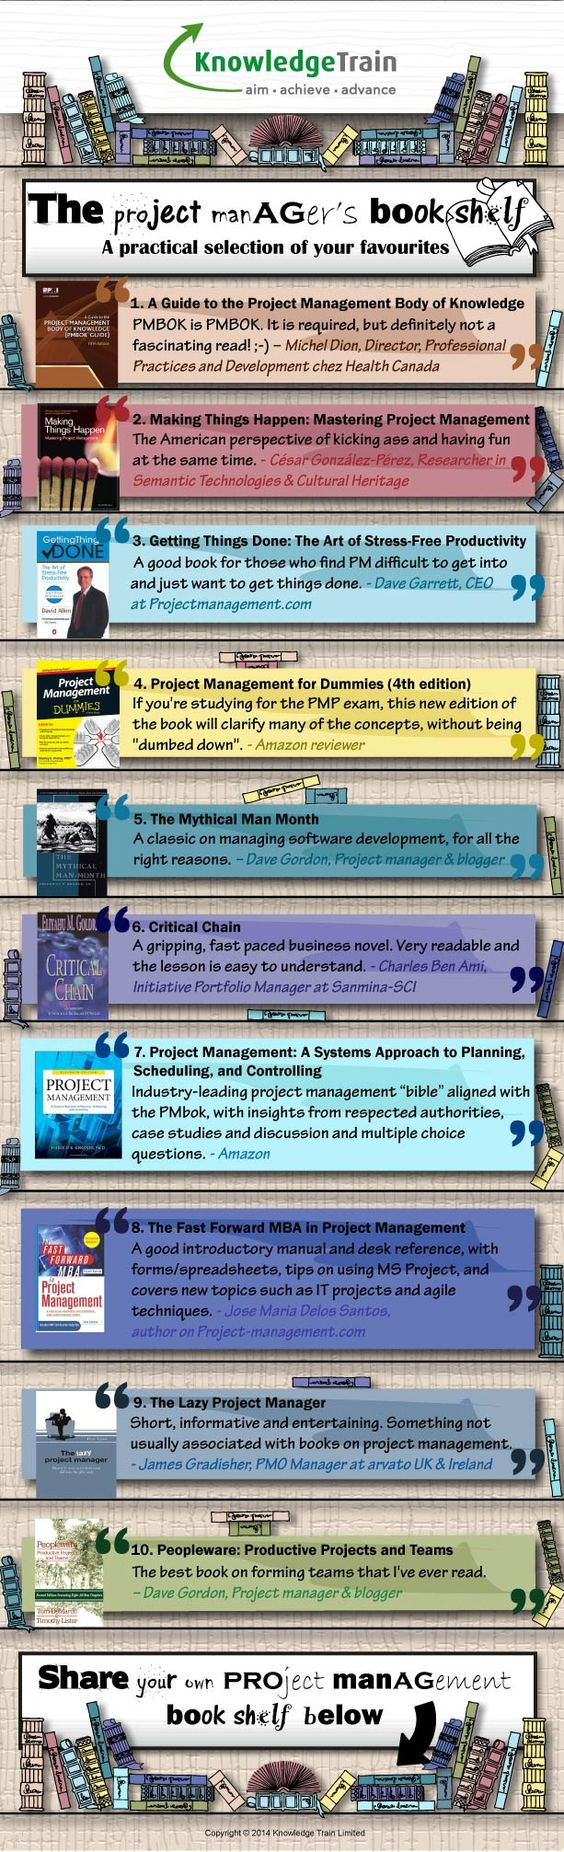 Top 10 Project Management Books What Does Your Book Shelf Look Like